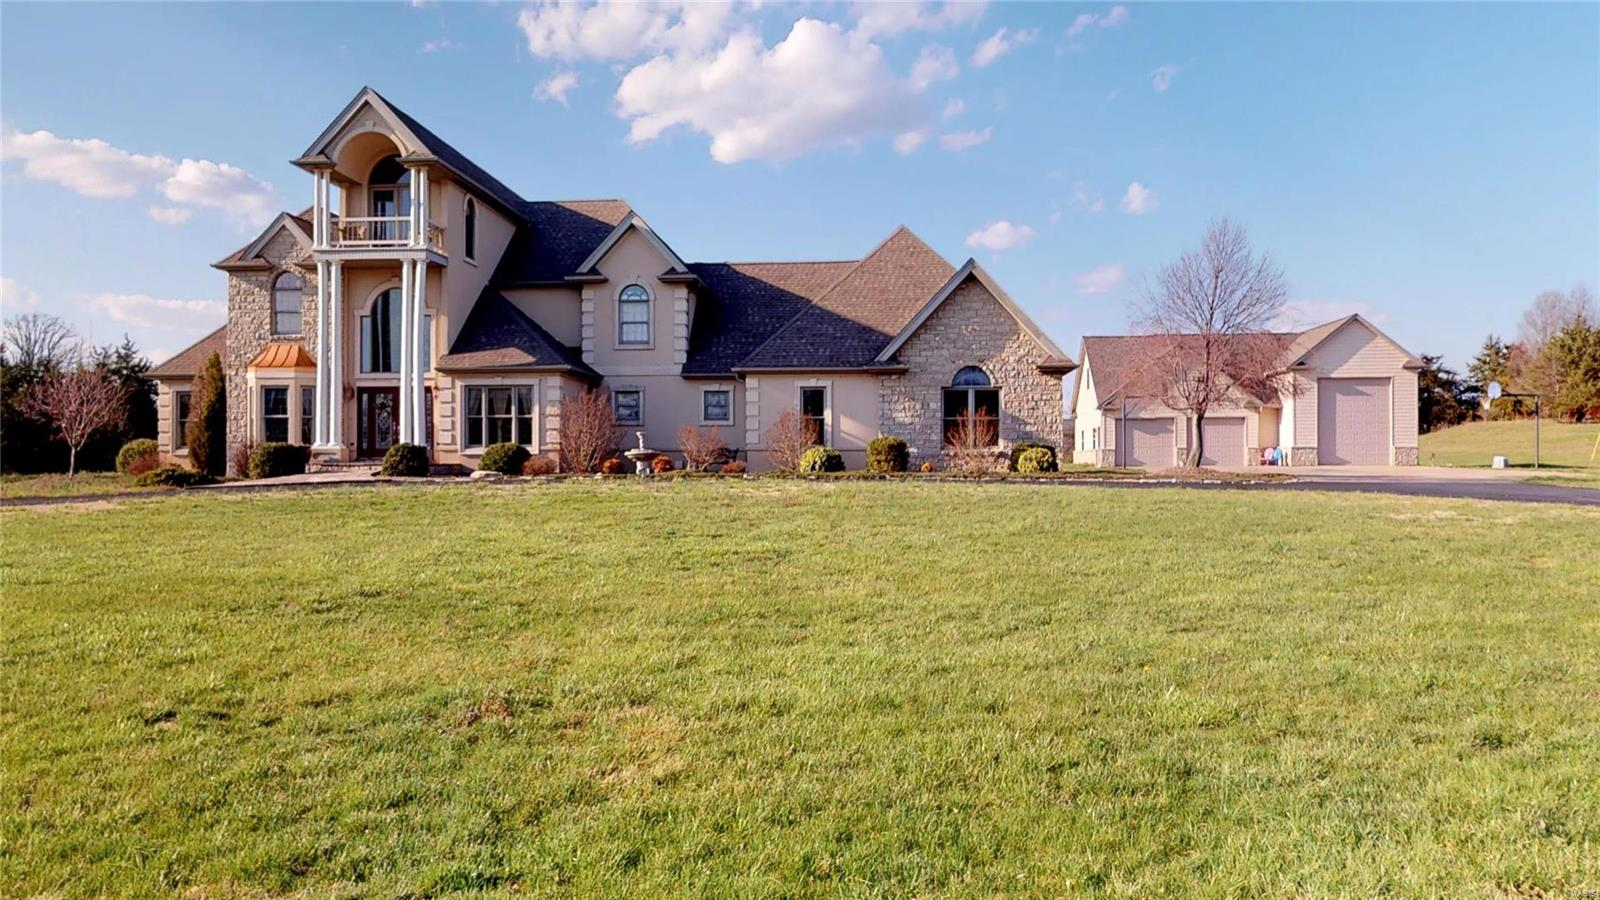 286 Pcr 506 Property Photo - Perryville, MO real estate listing